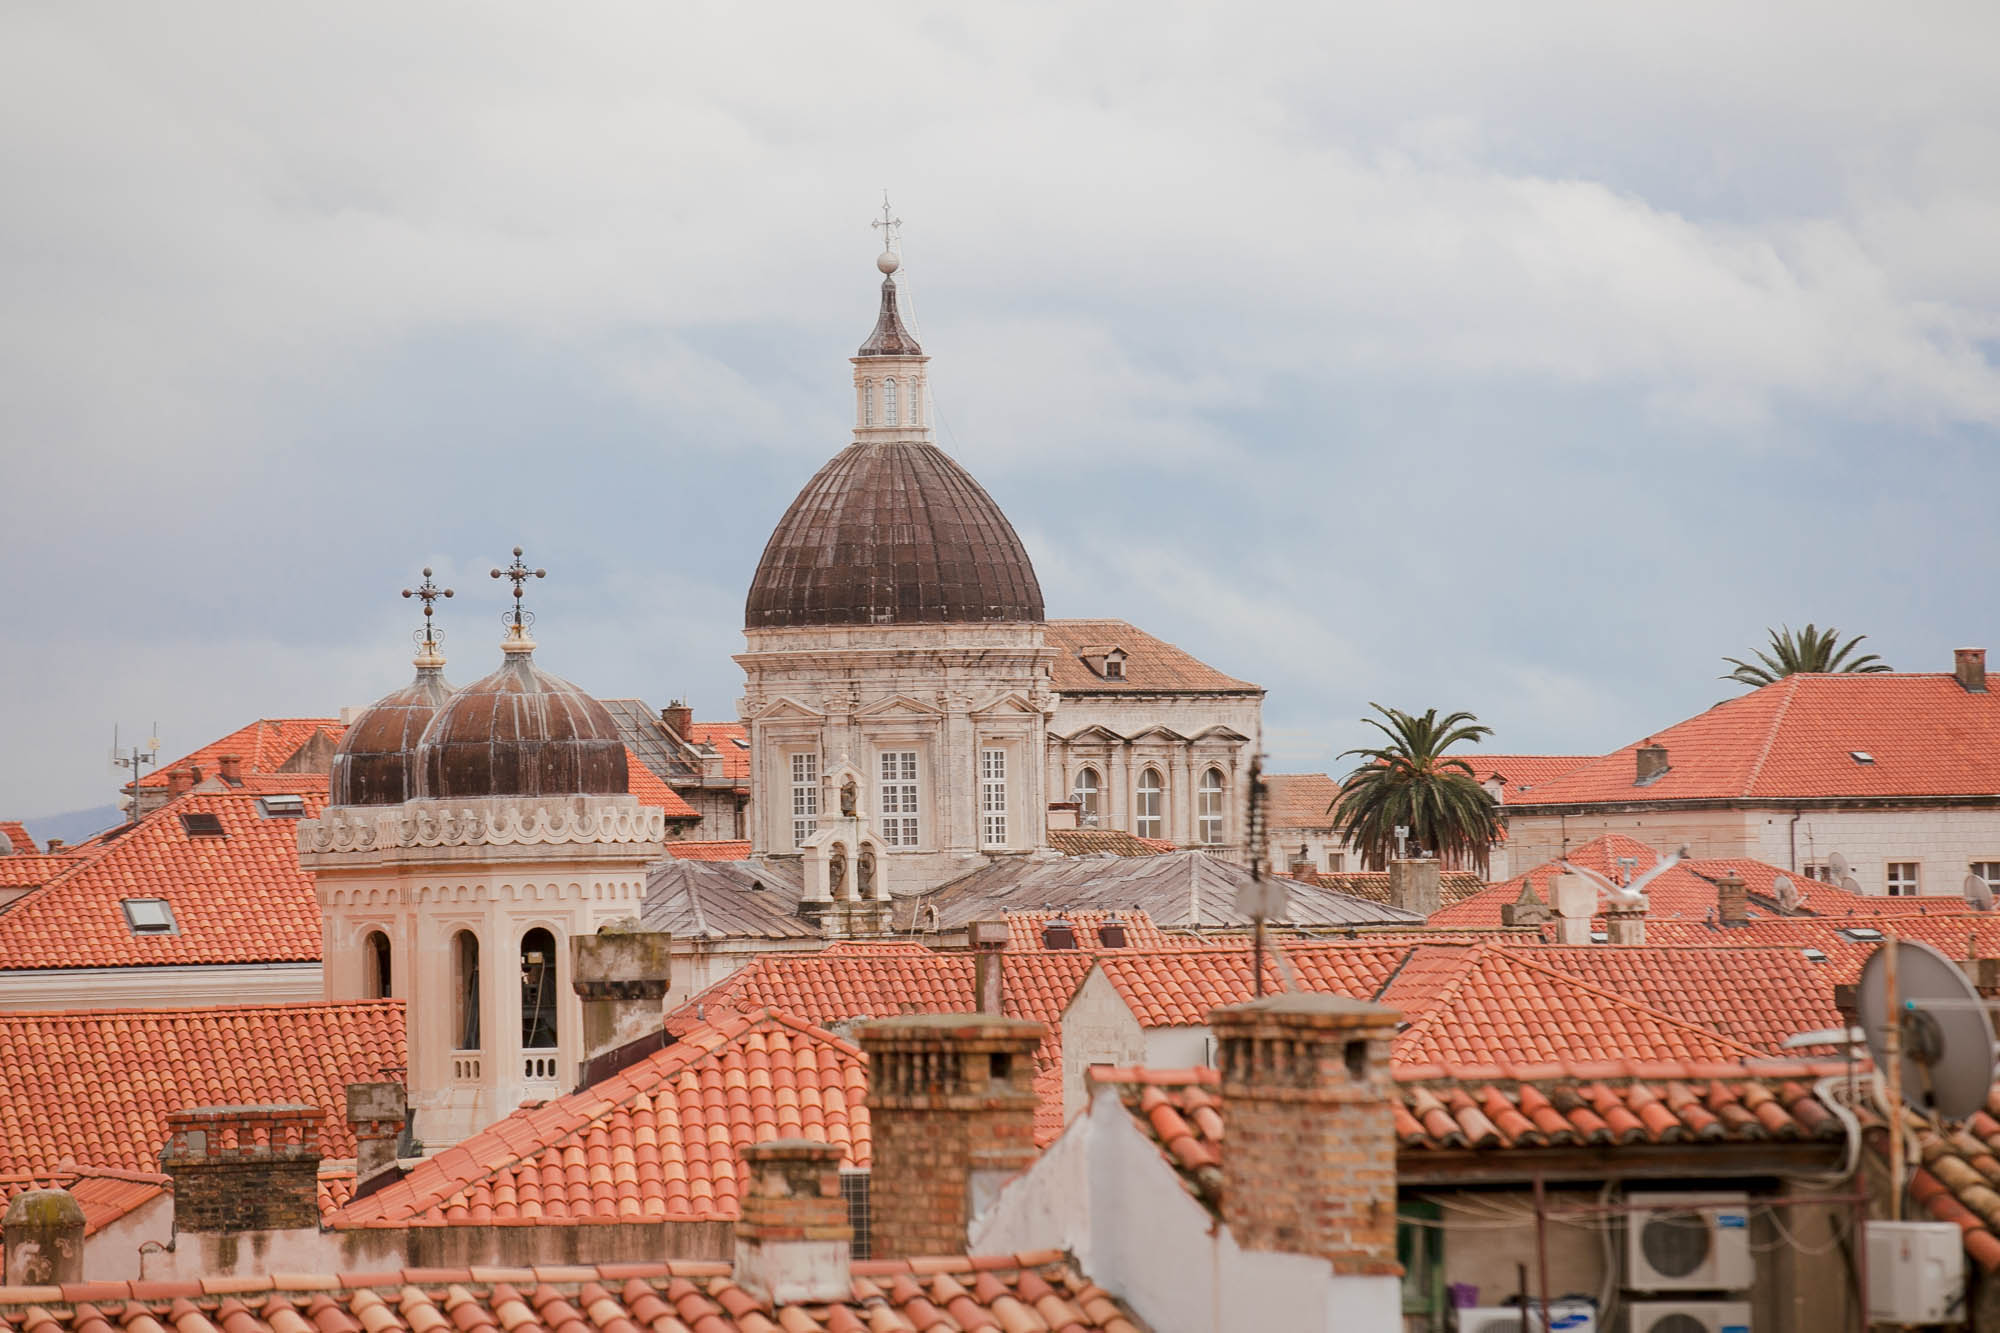 Dubrovnik towers & rooftops